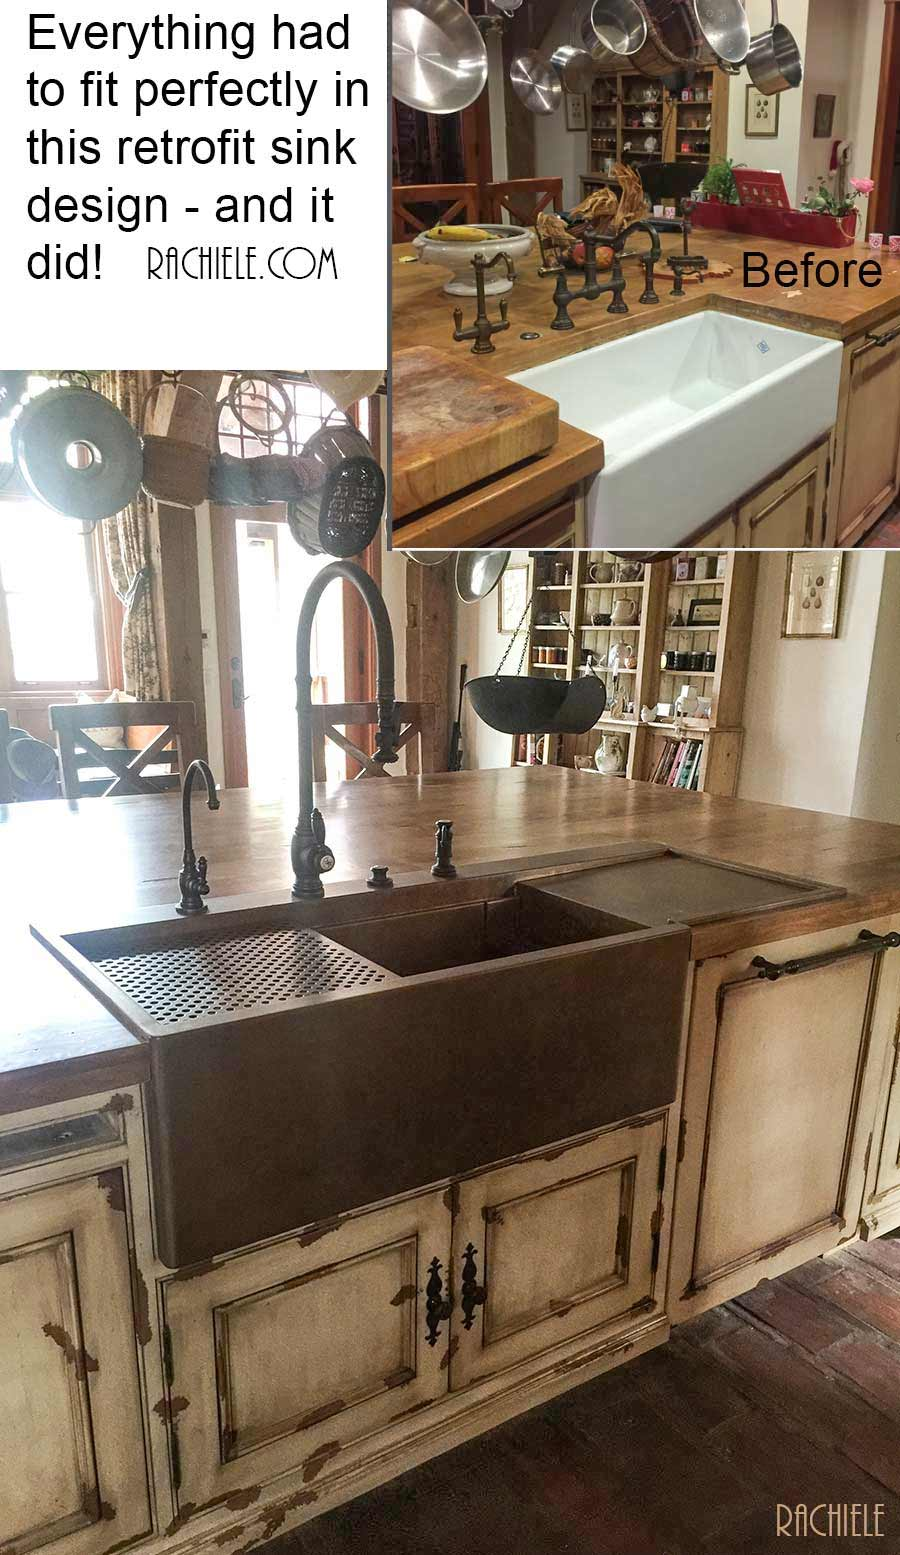 Kitchen Sinks With Drainboards Made In Usa